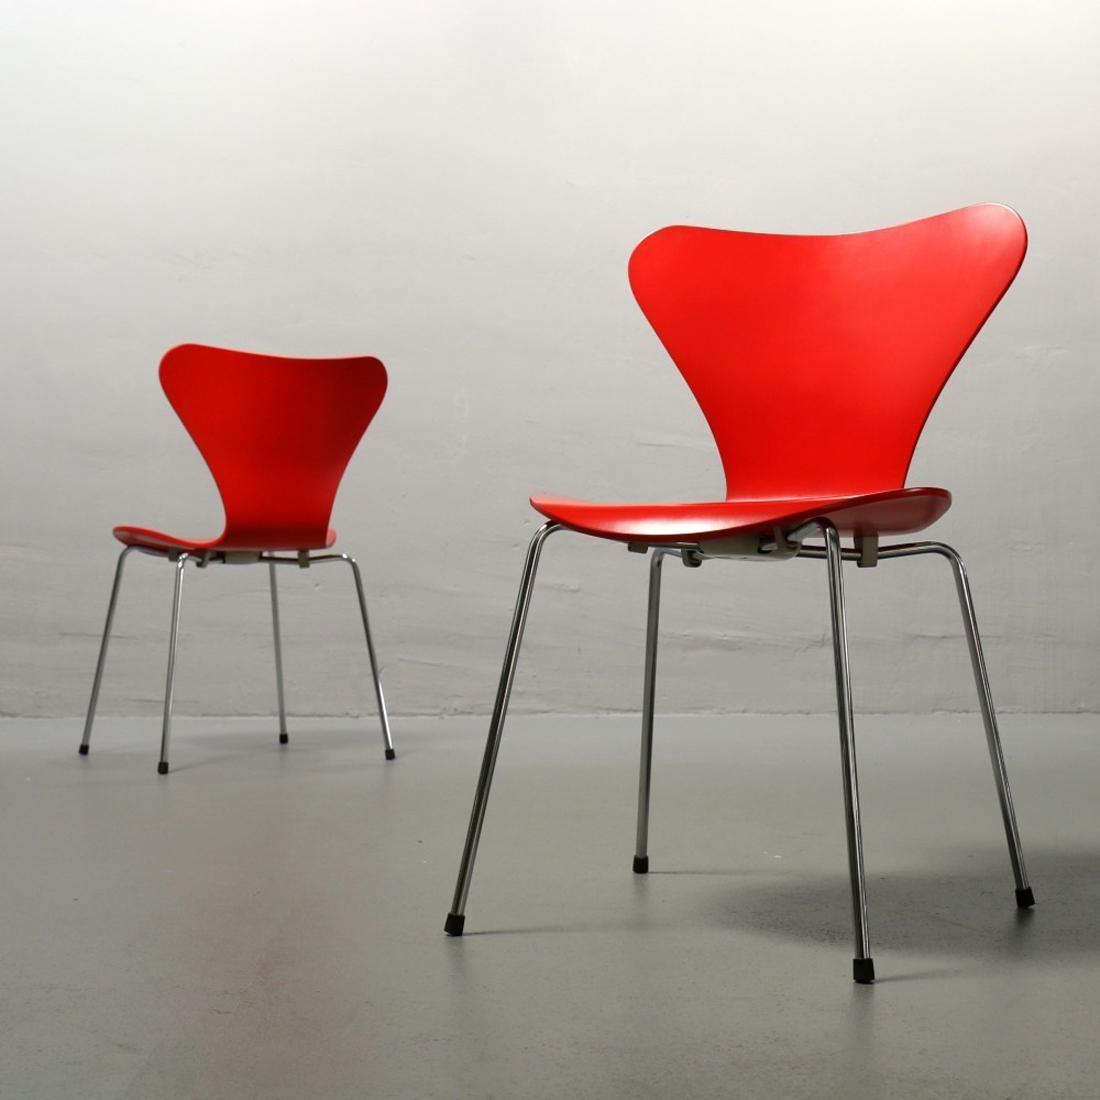 10 Timeless Chairs That Changed Our Lives